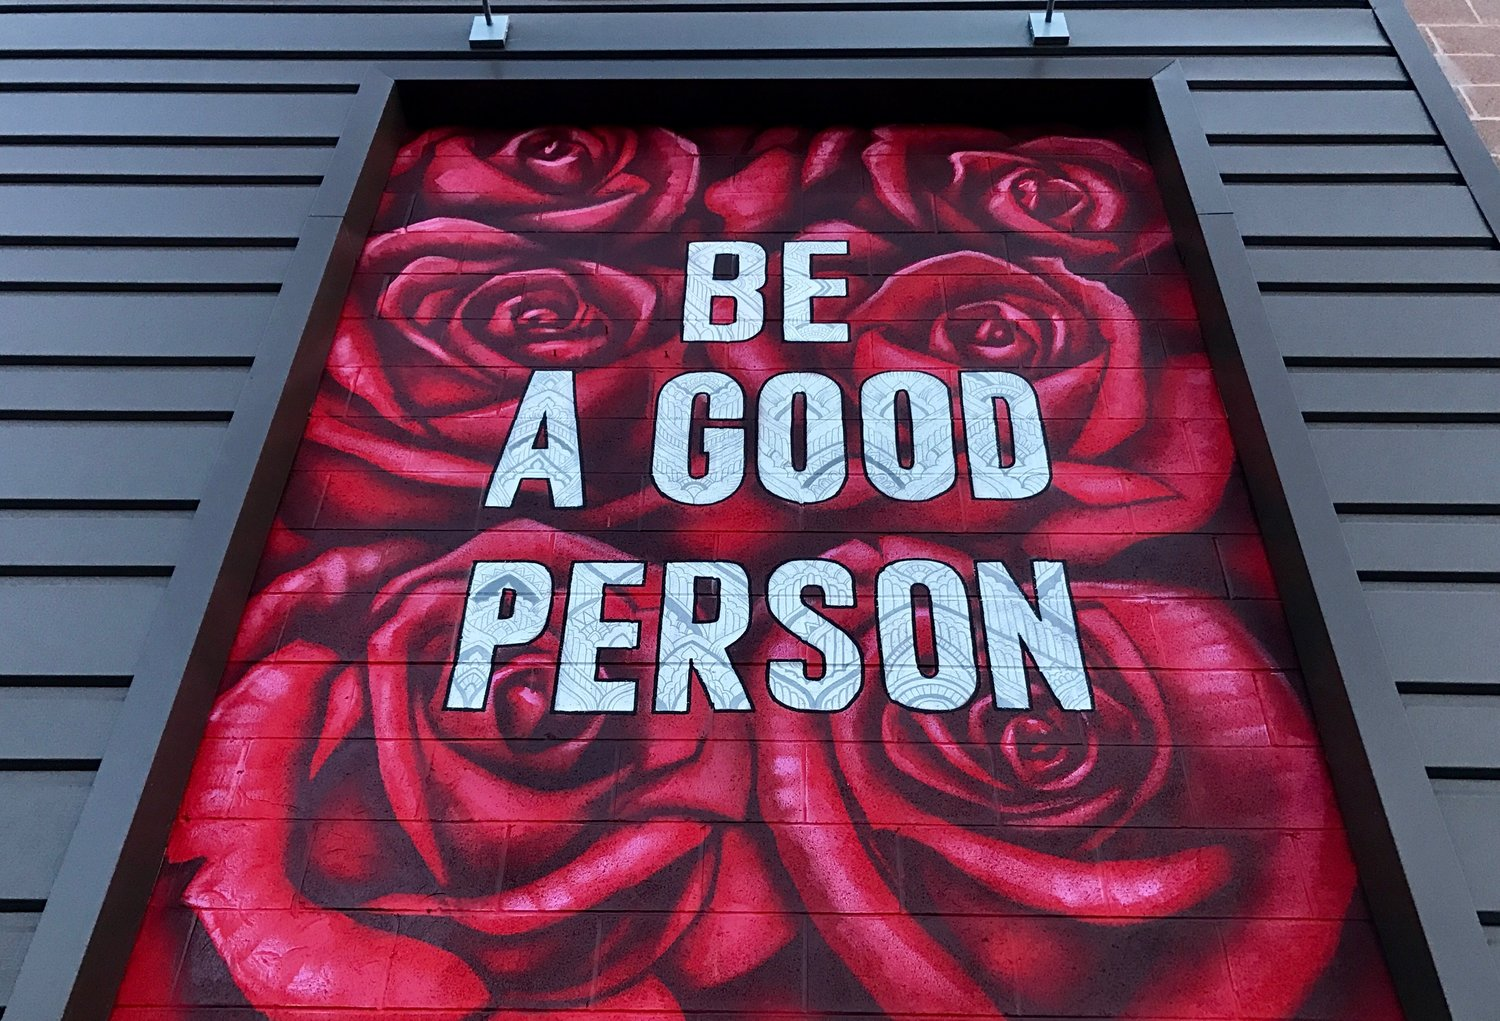 How to be good to others